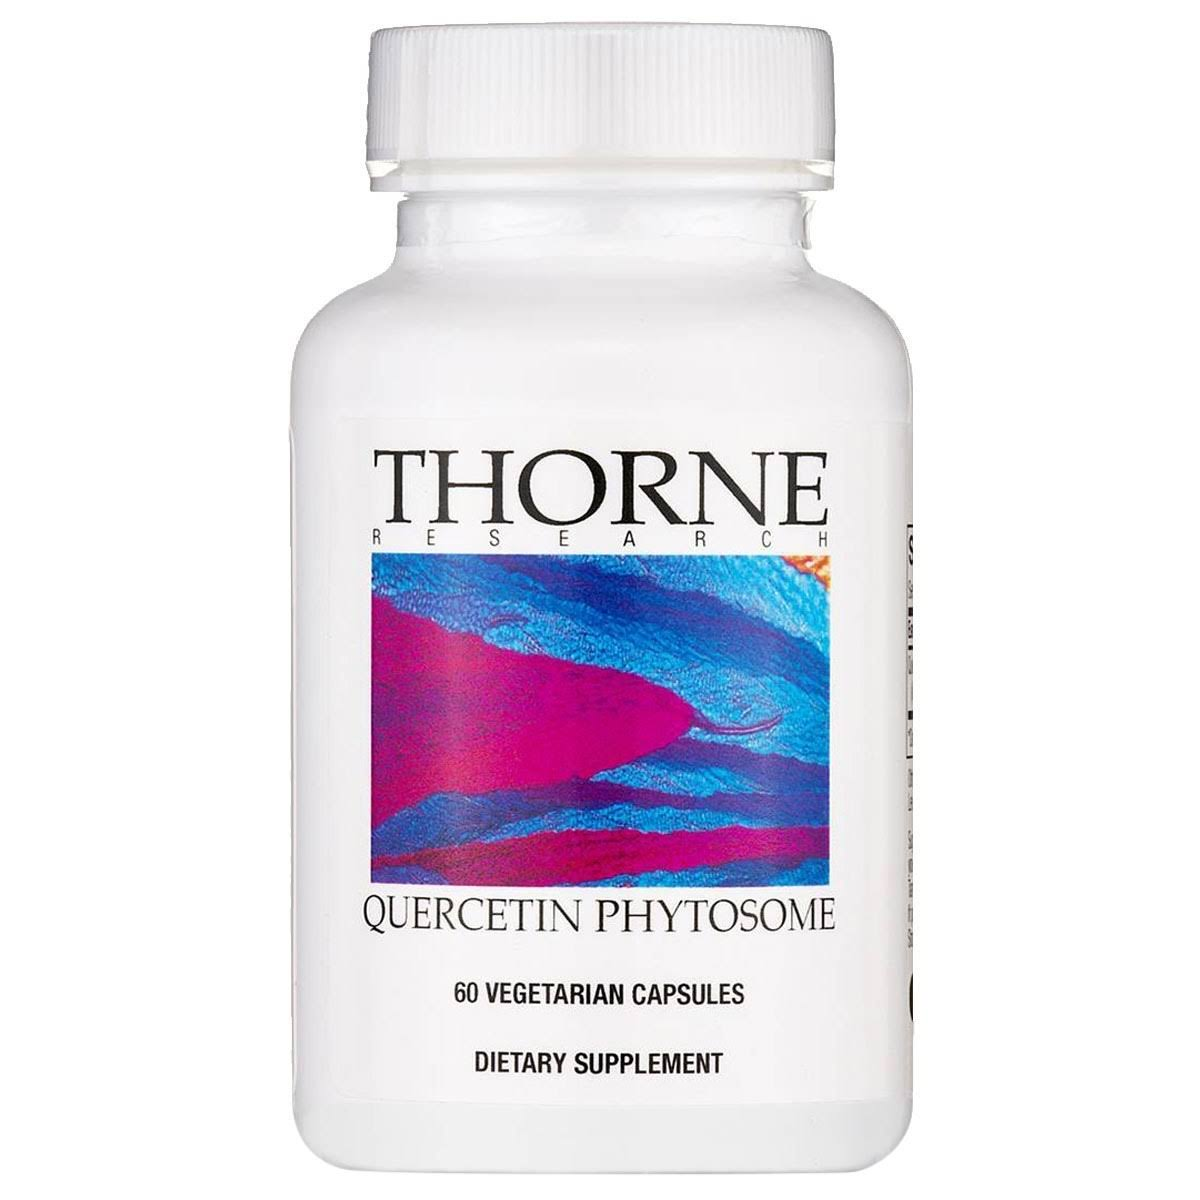 Thorne Research Quercetin Phytosome Supplements - 60ct